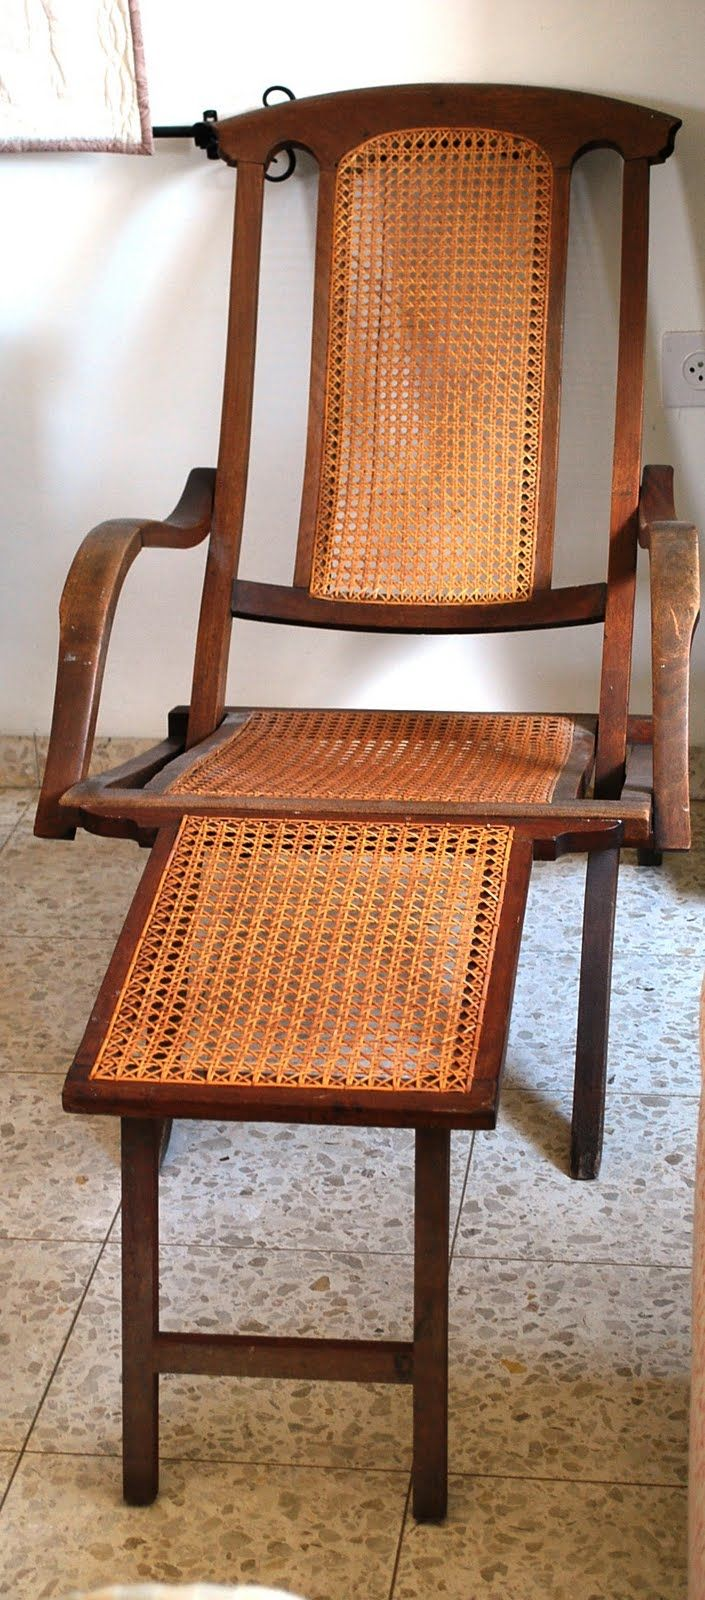 vintage steamer chair Old Wooden Chairs, Antique Chairs, Amelia Peabody,  British Colonial Style - Vintage Steamer Chair Sit-A-Spell Pinterest Campaign Furniture